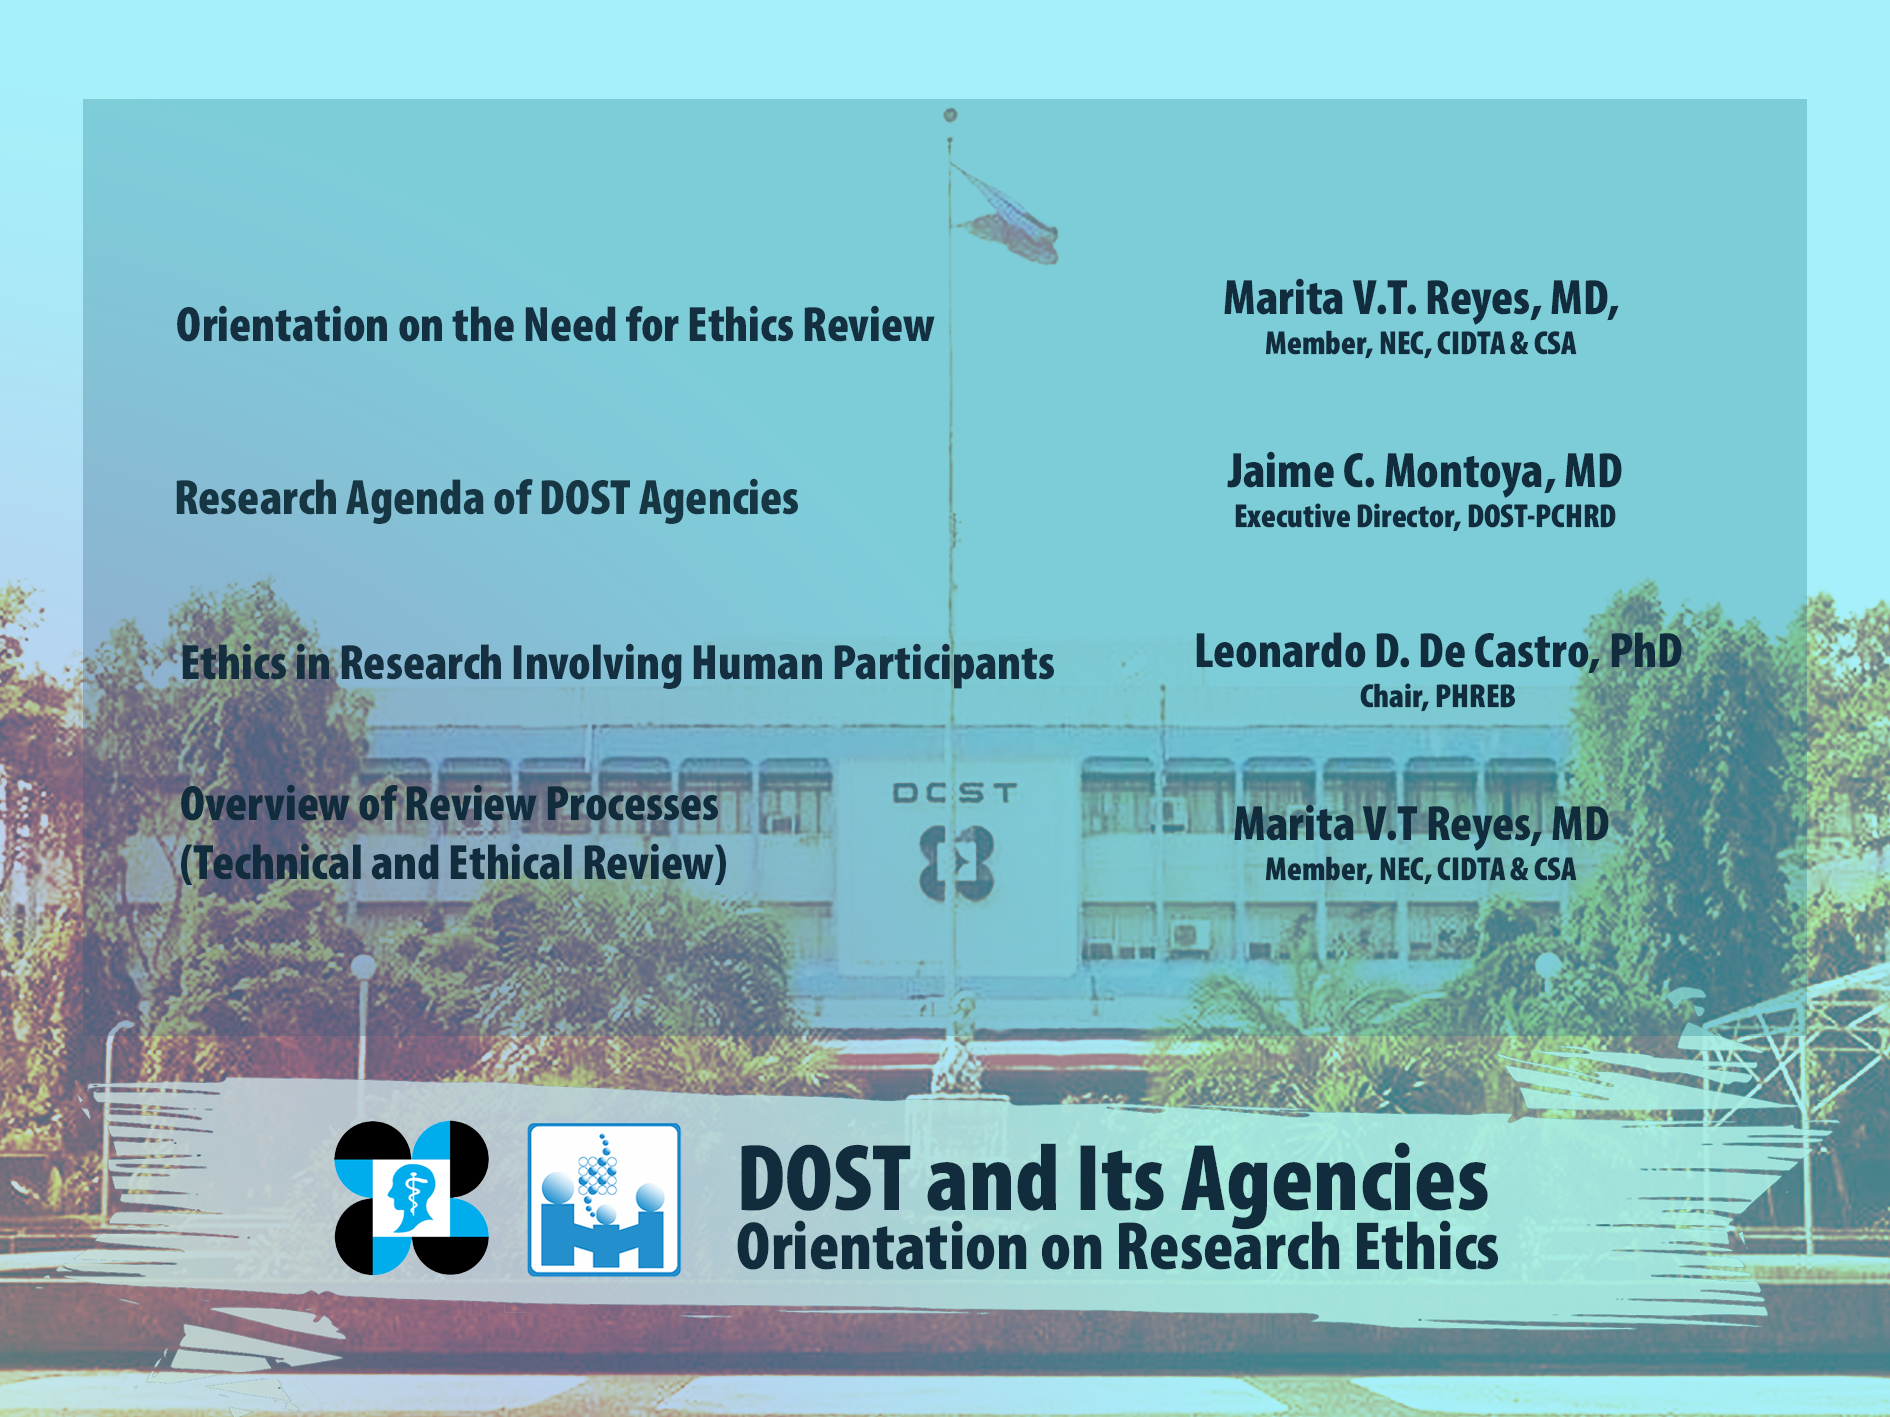 2020 DOST and Its Agencies Orientation on Research Ethics